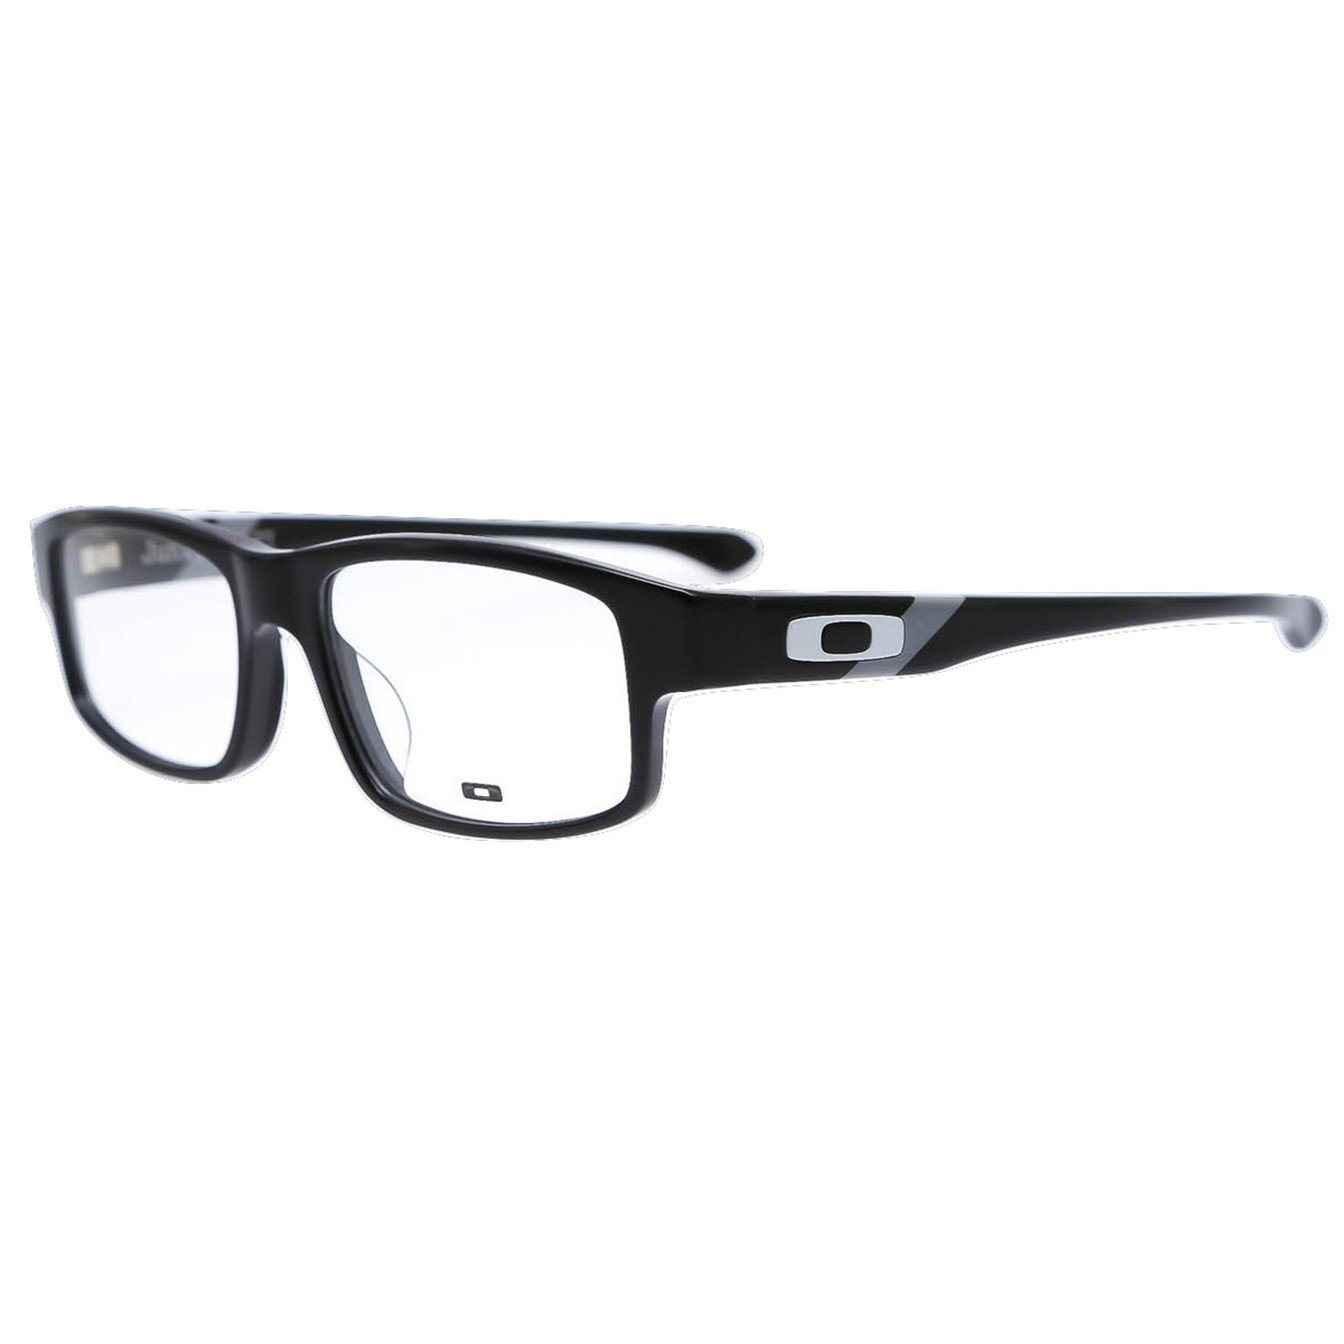 Oakley Asia Fit Junkyard II Precription Eye Glasses - Polished Black/Grey, OX1102-0453 by Oakley